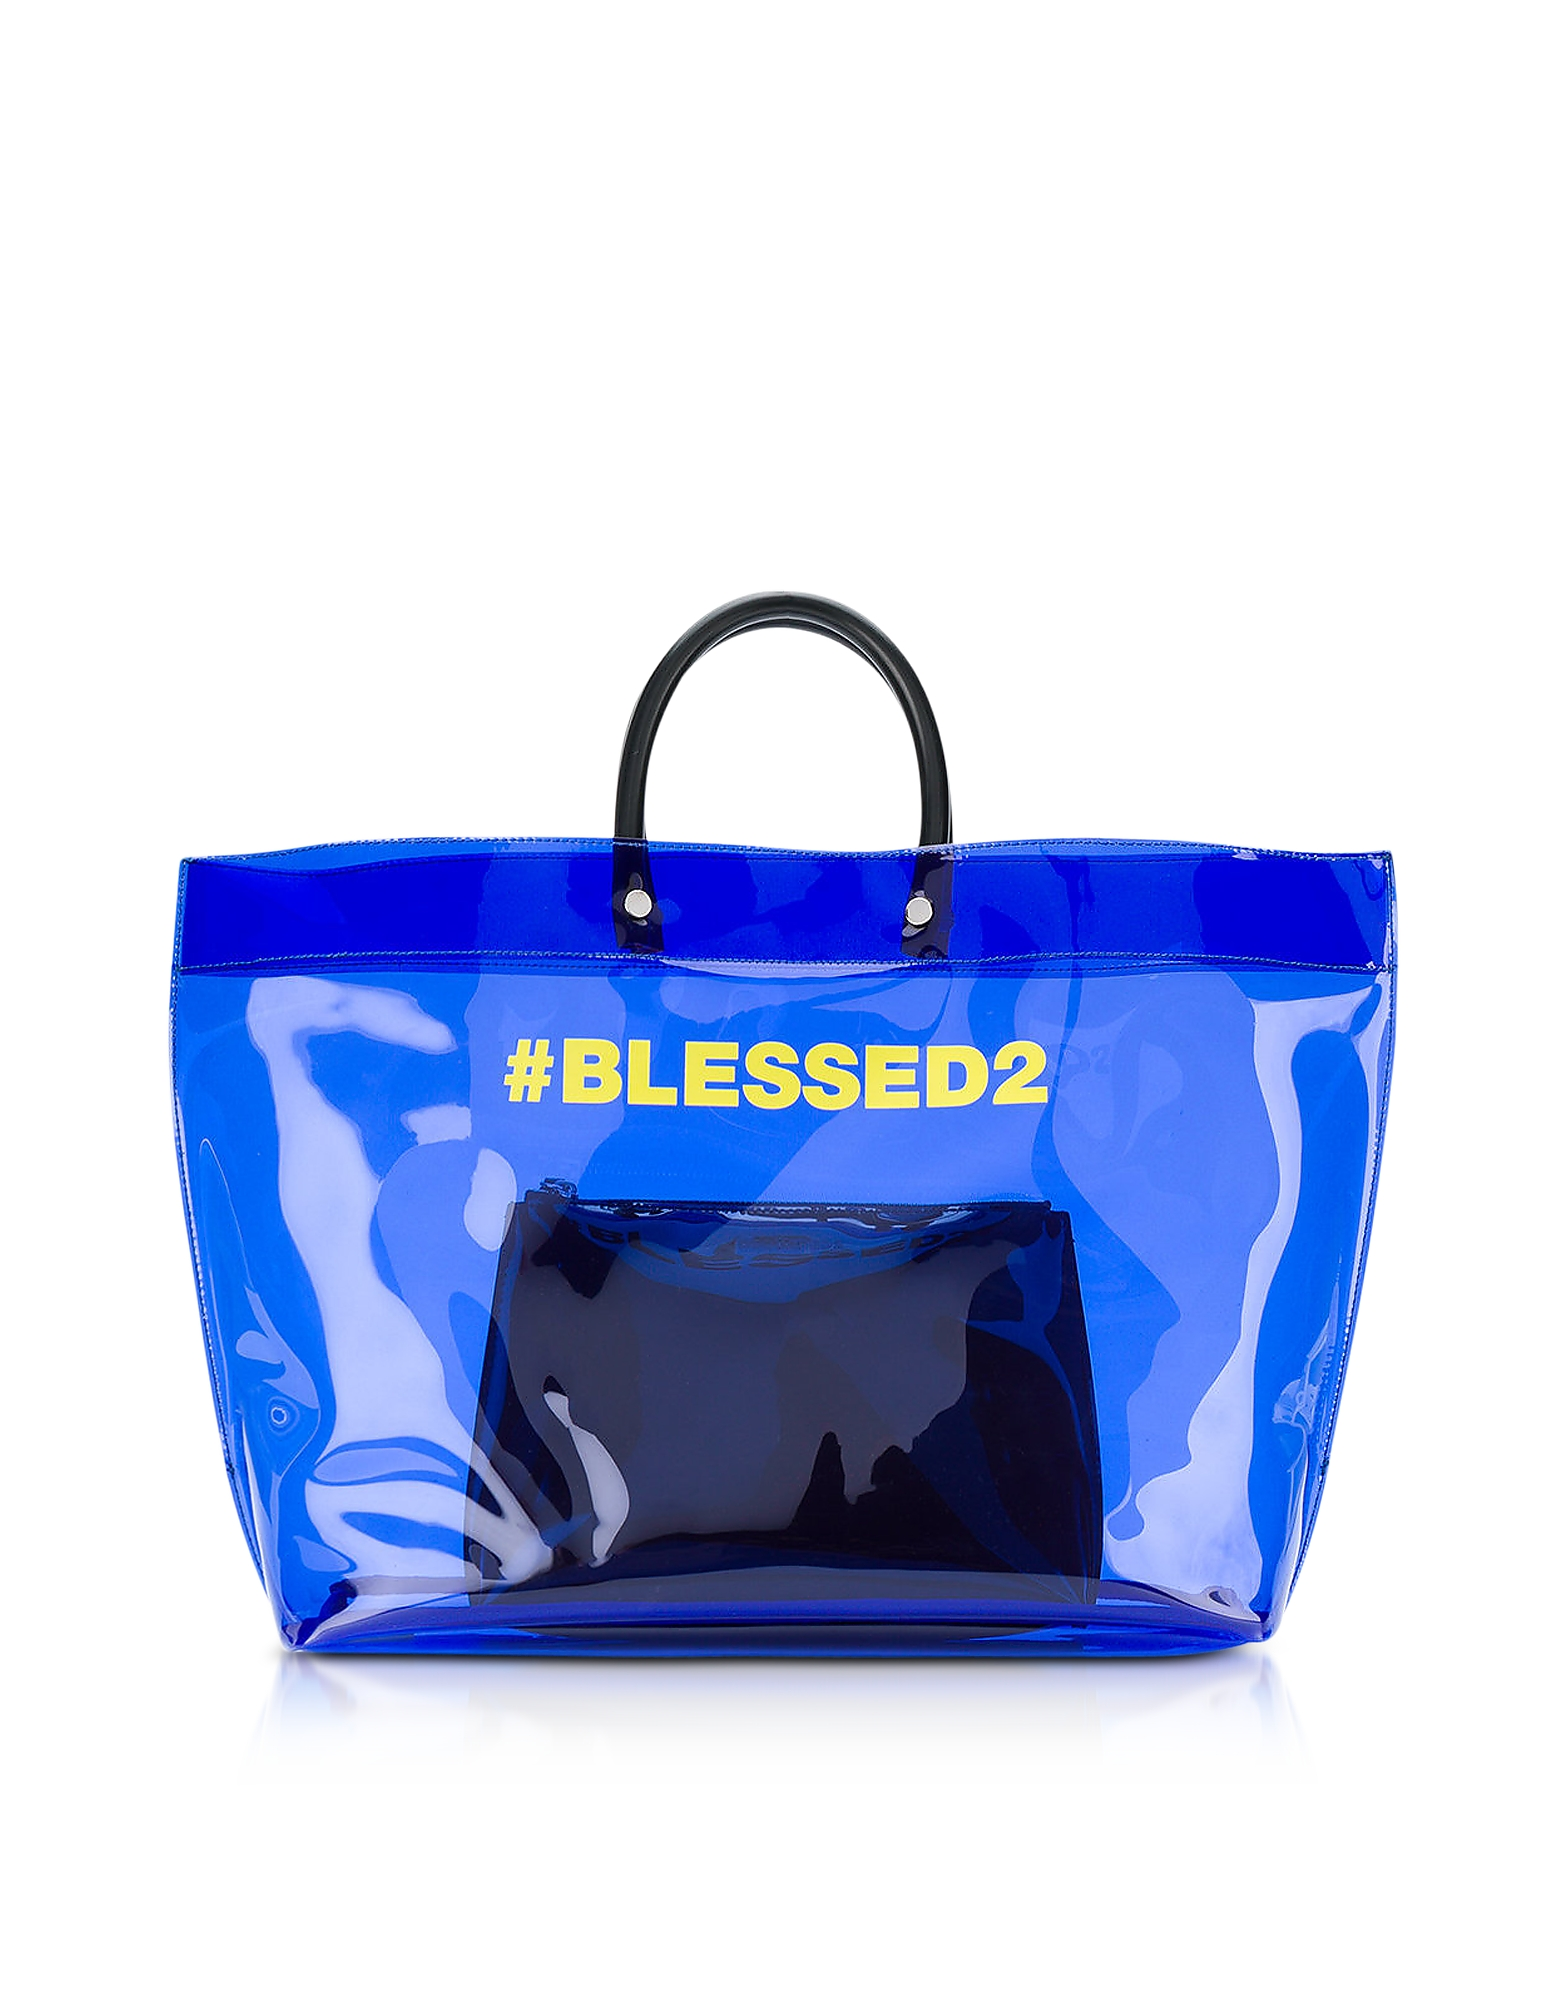 DSquared2 Handbags, Blessed Blue Medium Tote Bag